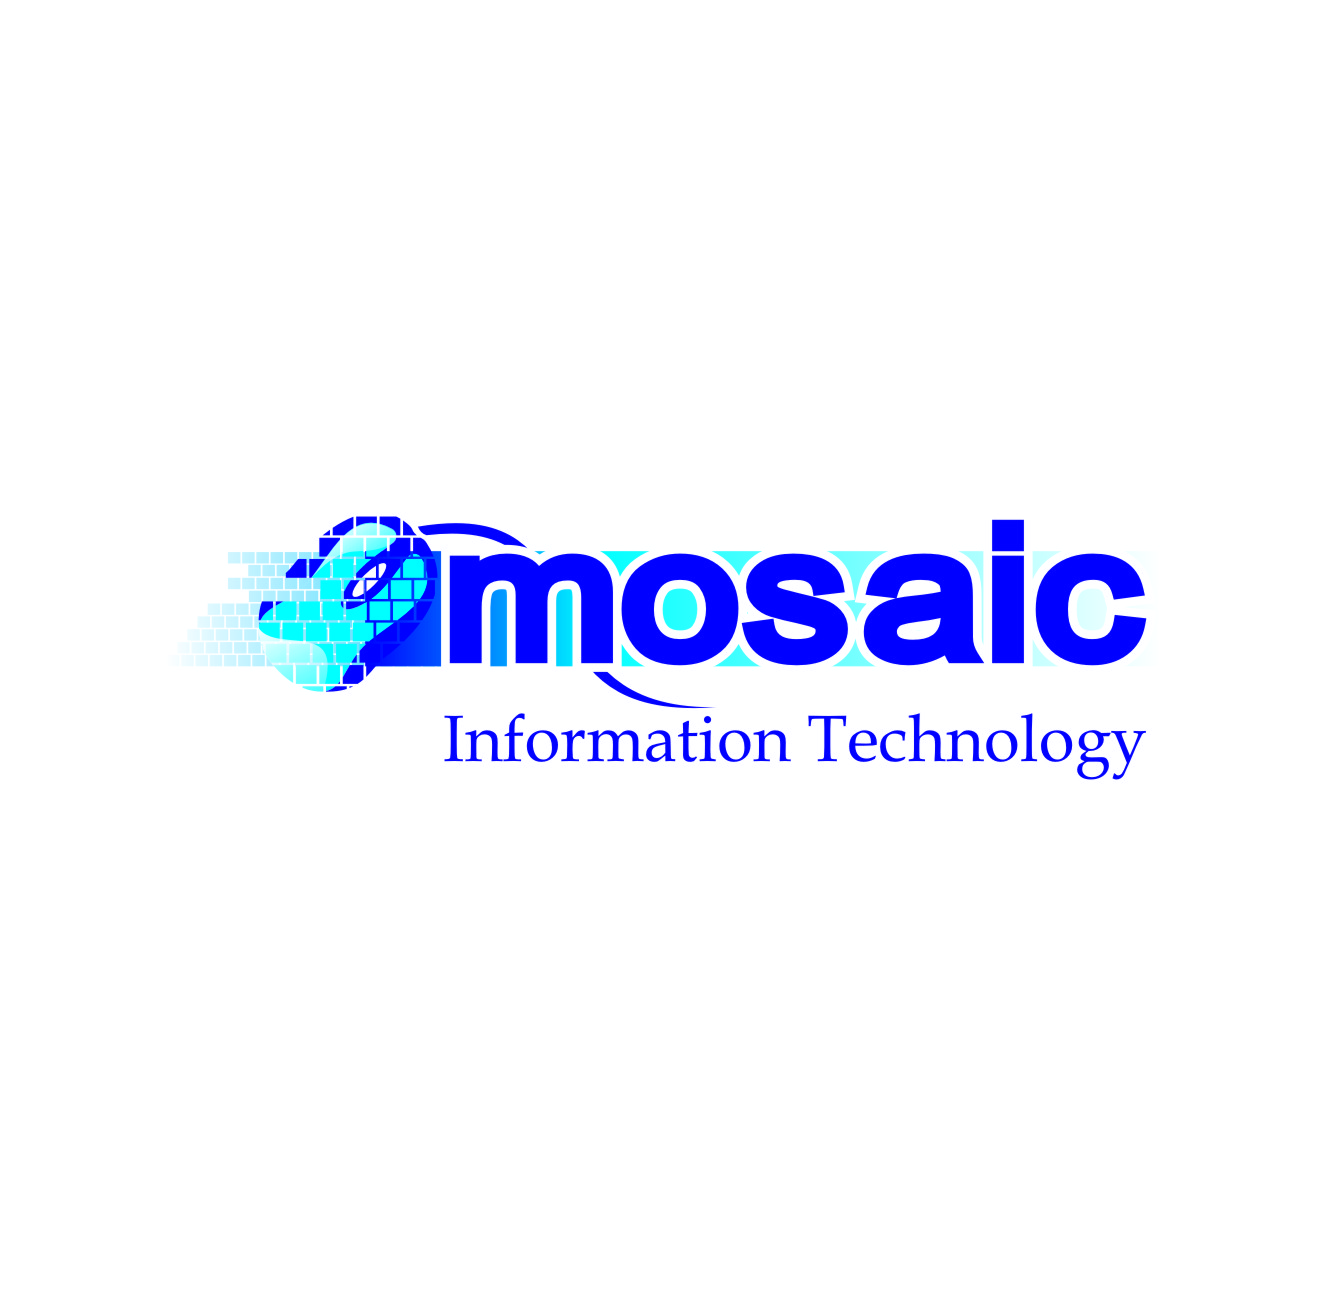 Logo Design by Private User - Entry No. 84 in the Logo Design Contest Mosaic Information Technology Logo Design.